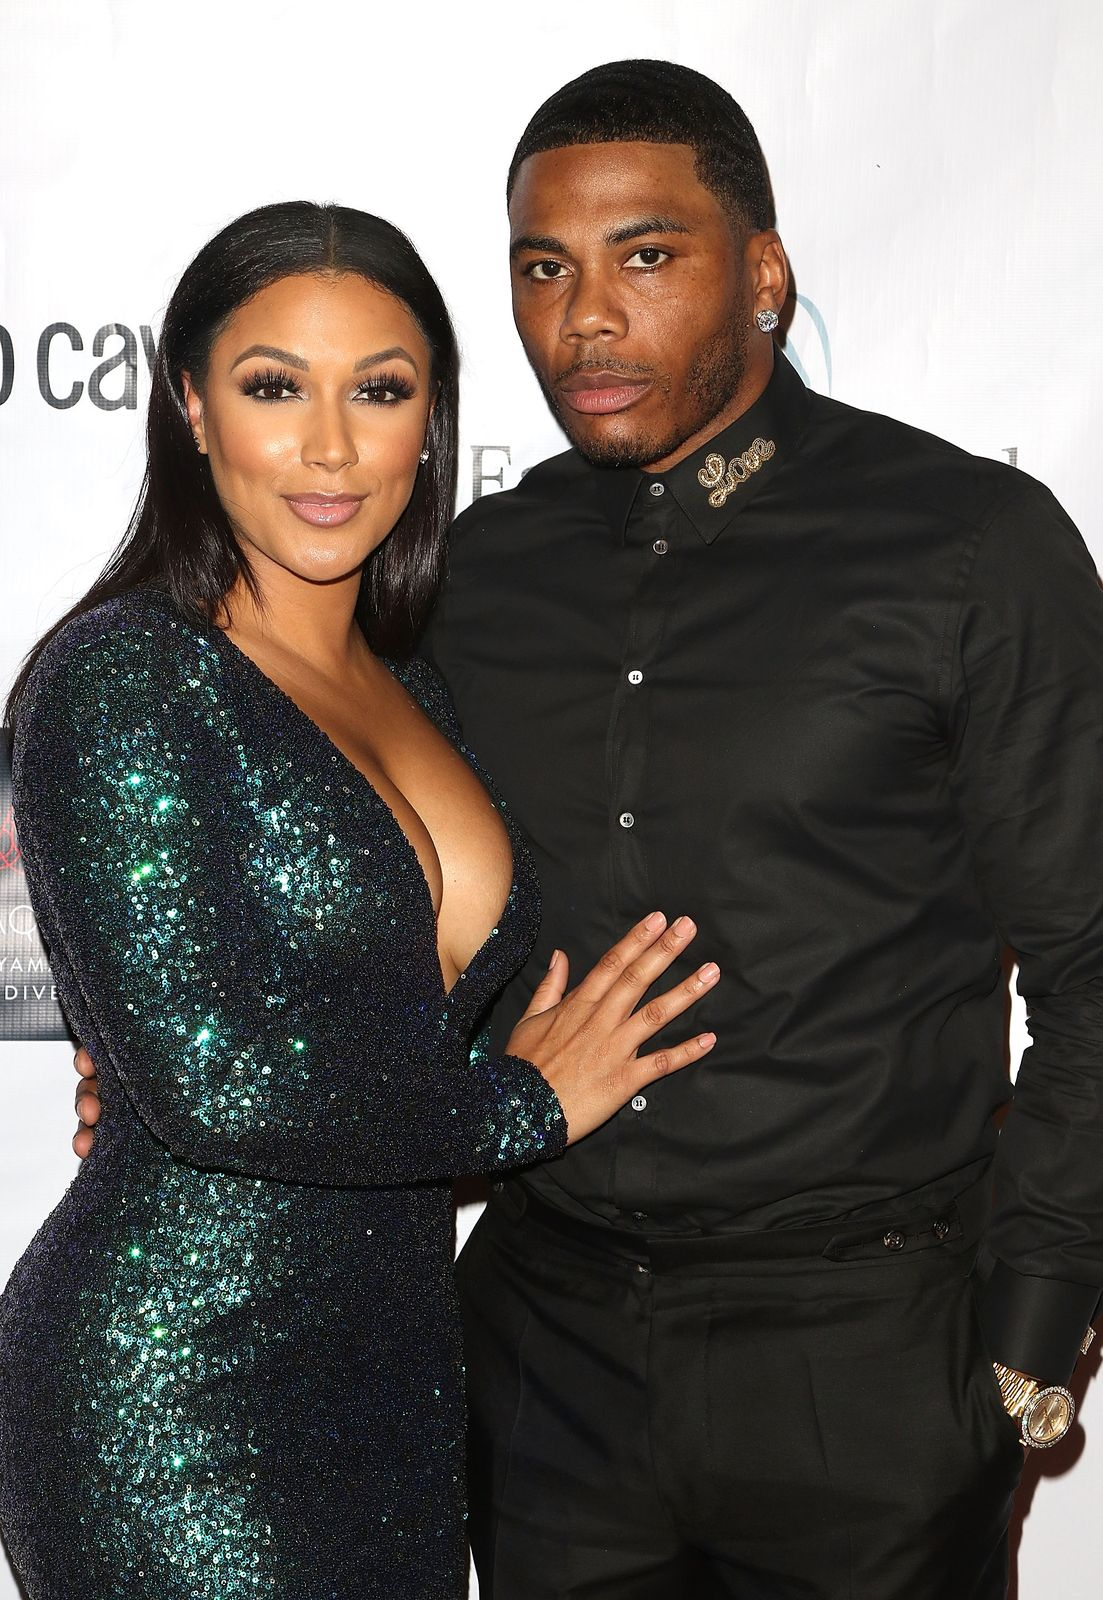 Shantel Jackson and Nelly at the 7th Annual Face Forward Gala on September 24, 2016, in Los Angeles, California | Photo: JC Olivera/Getty Images